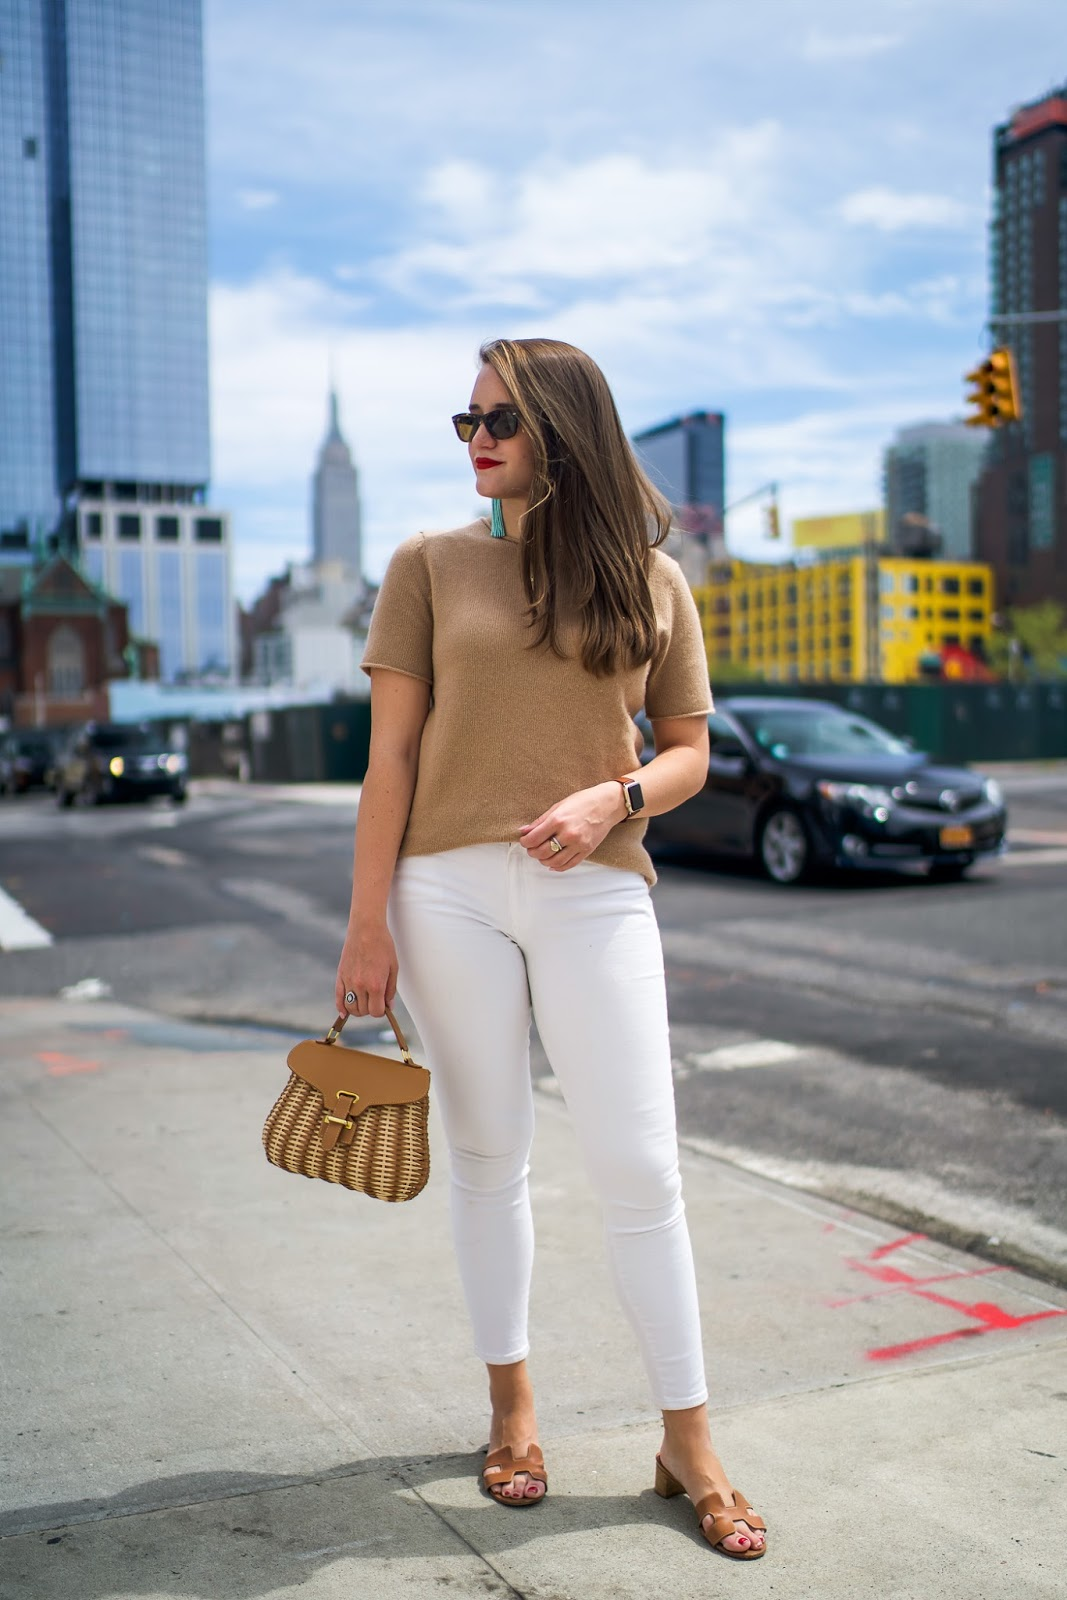 Transitioning To Fall New York City Fashion And